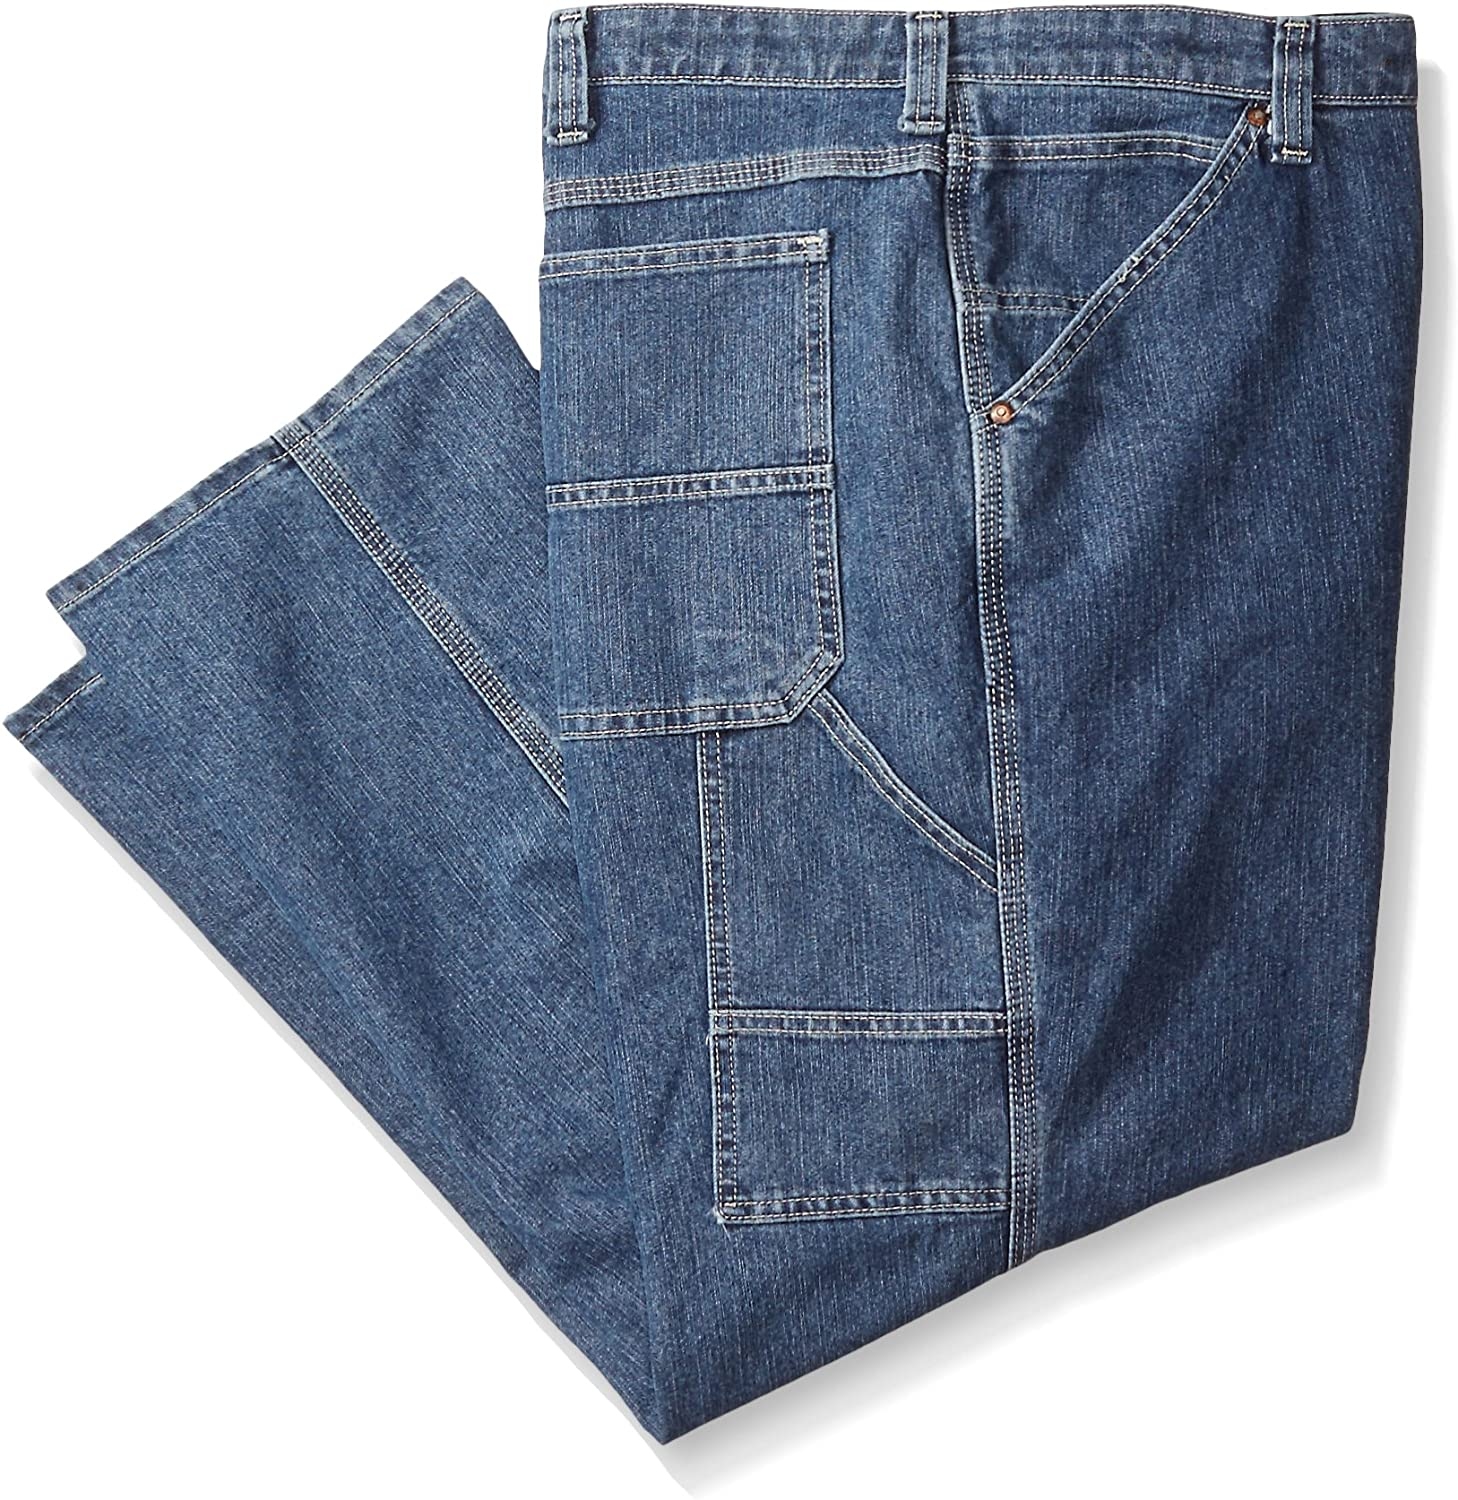 New Wrangler Men/'s Carpenter Jeans Big and Tall sizes Three Colors